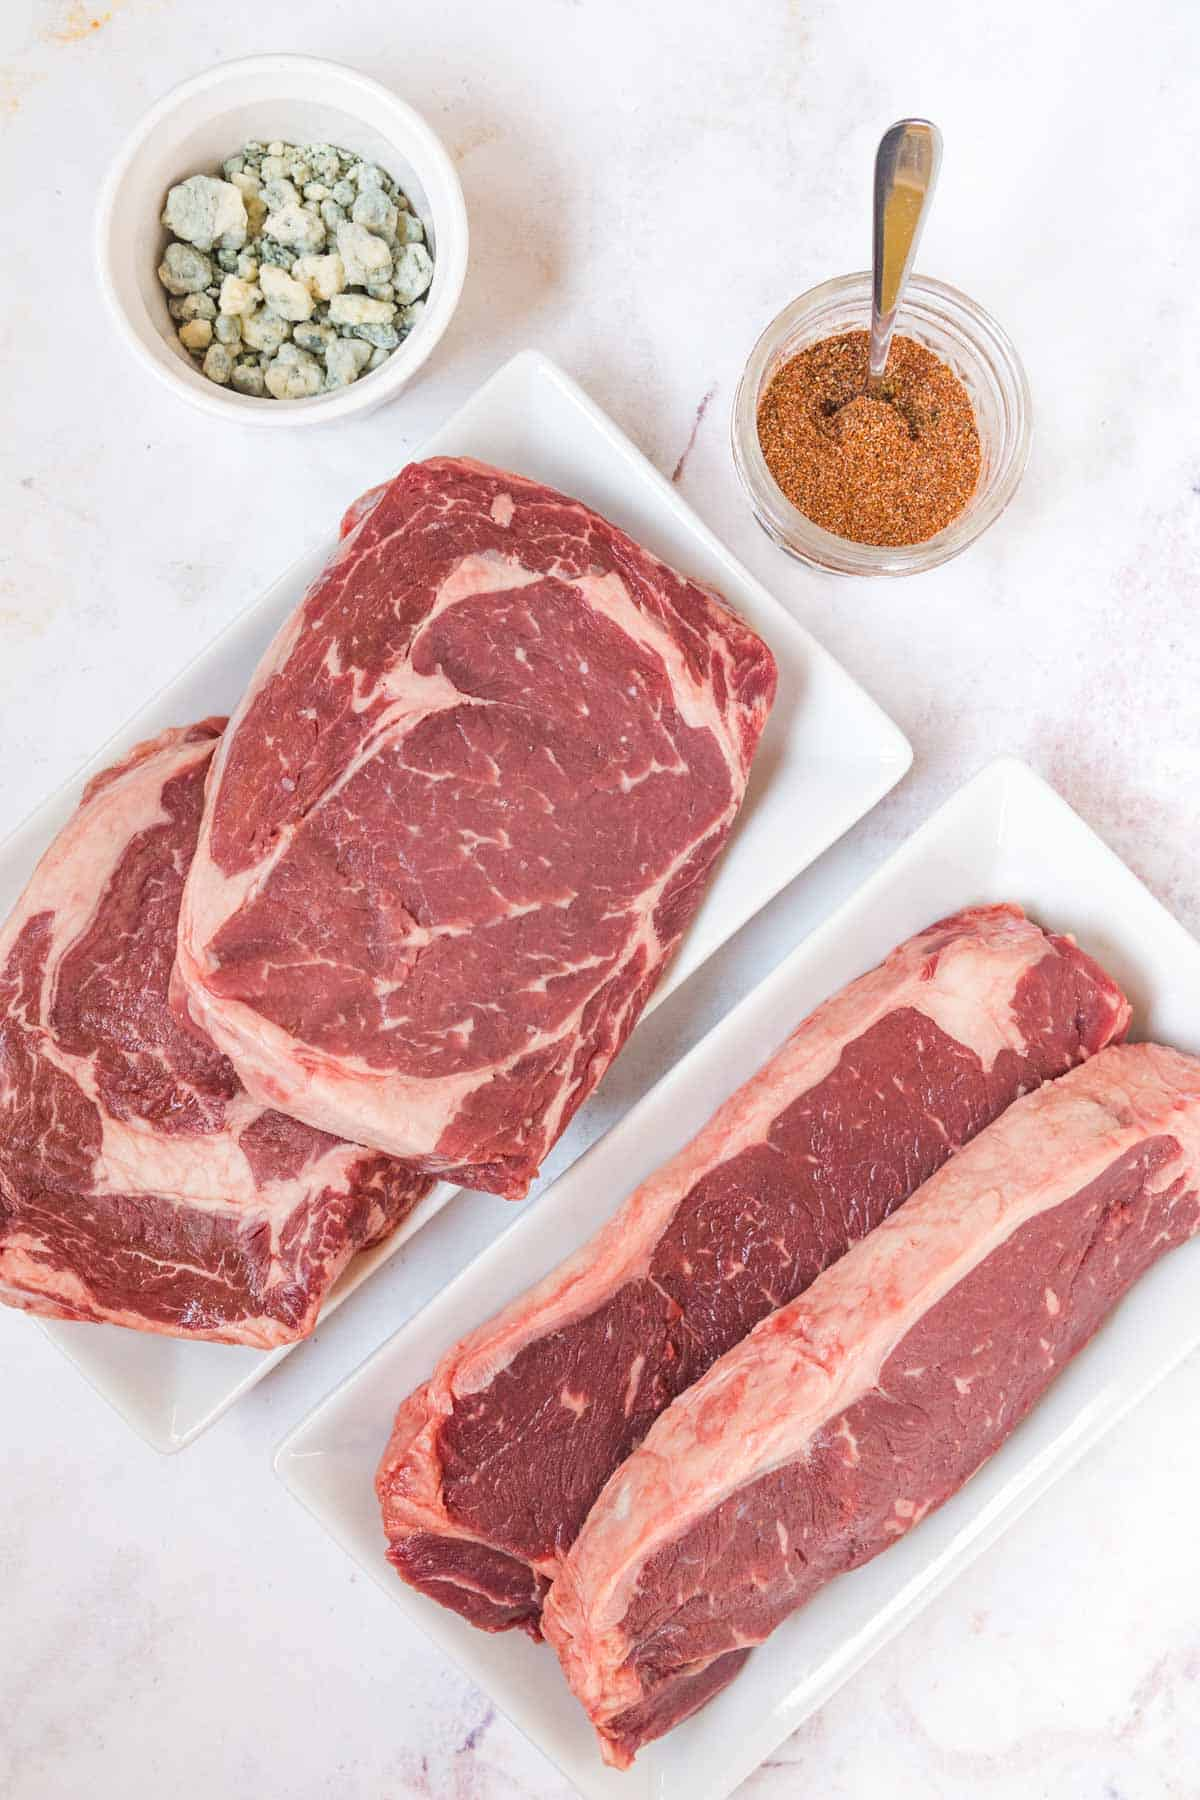 Four Raw NY Strip Steaks Beside a Bowl of Blue Cheese and the Spice Rub